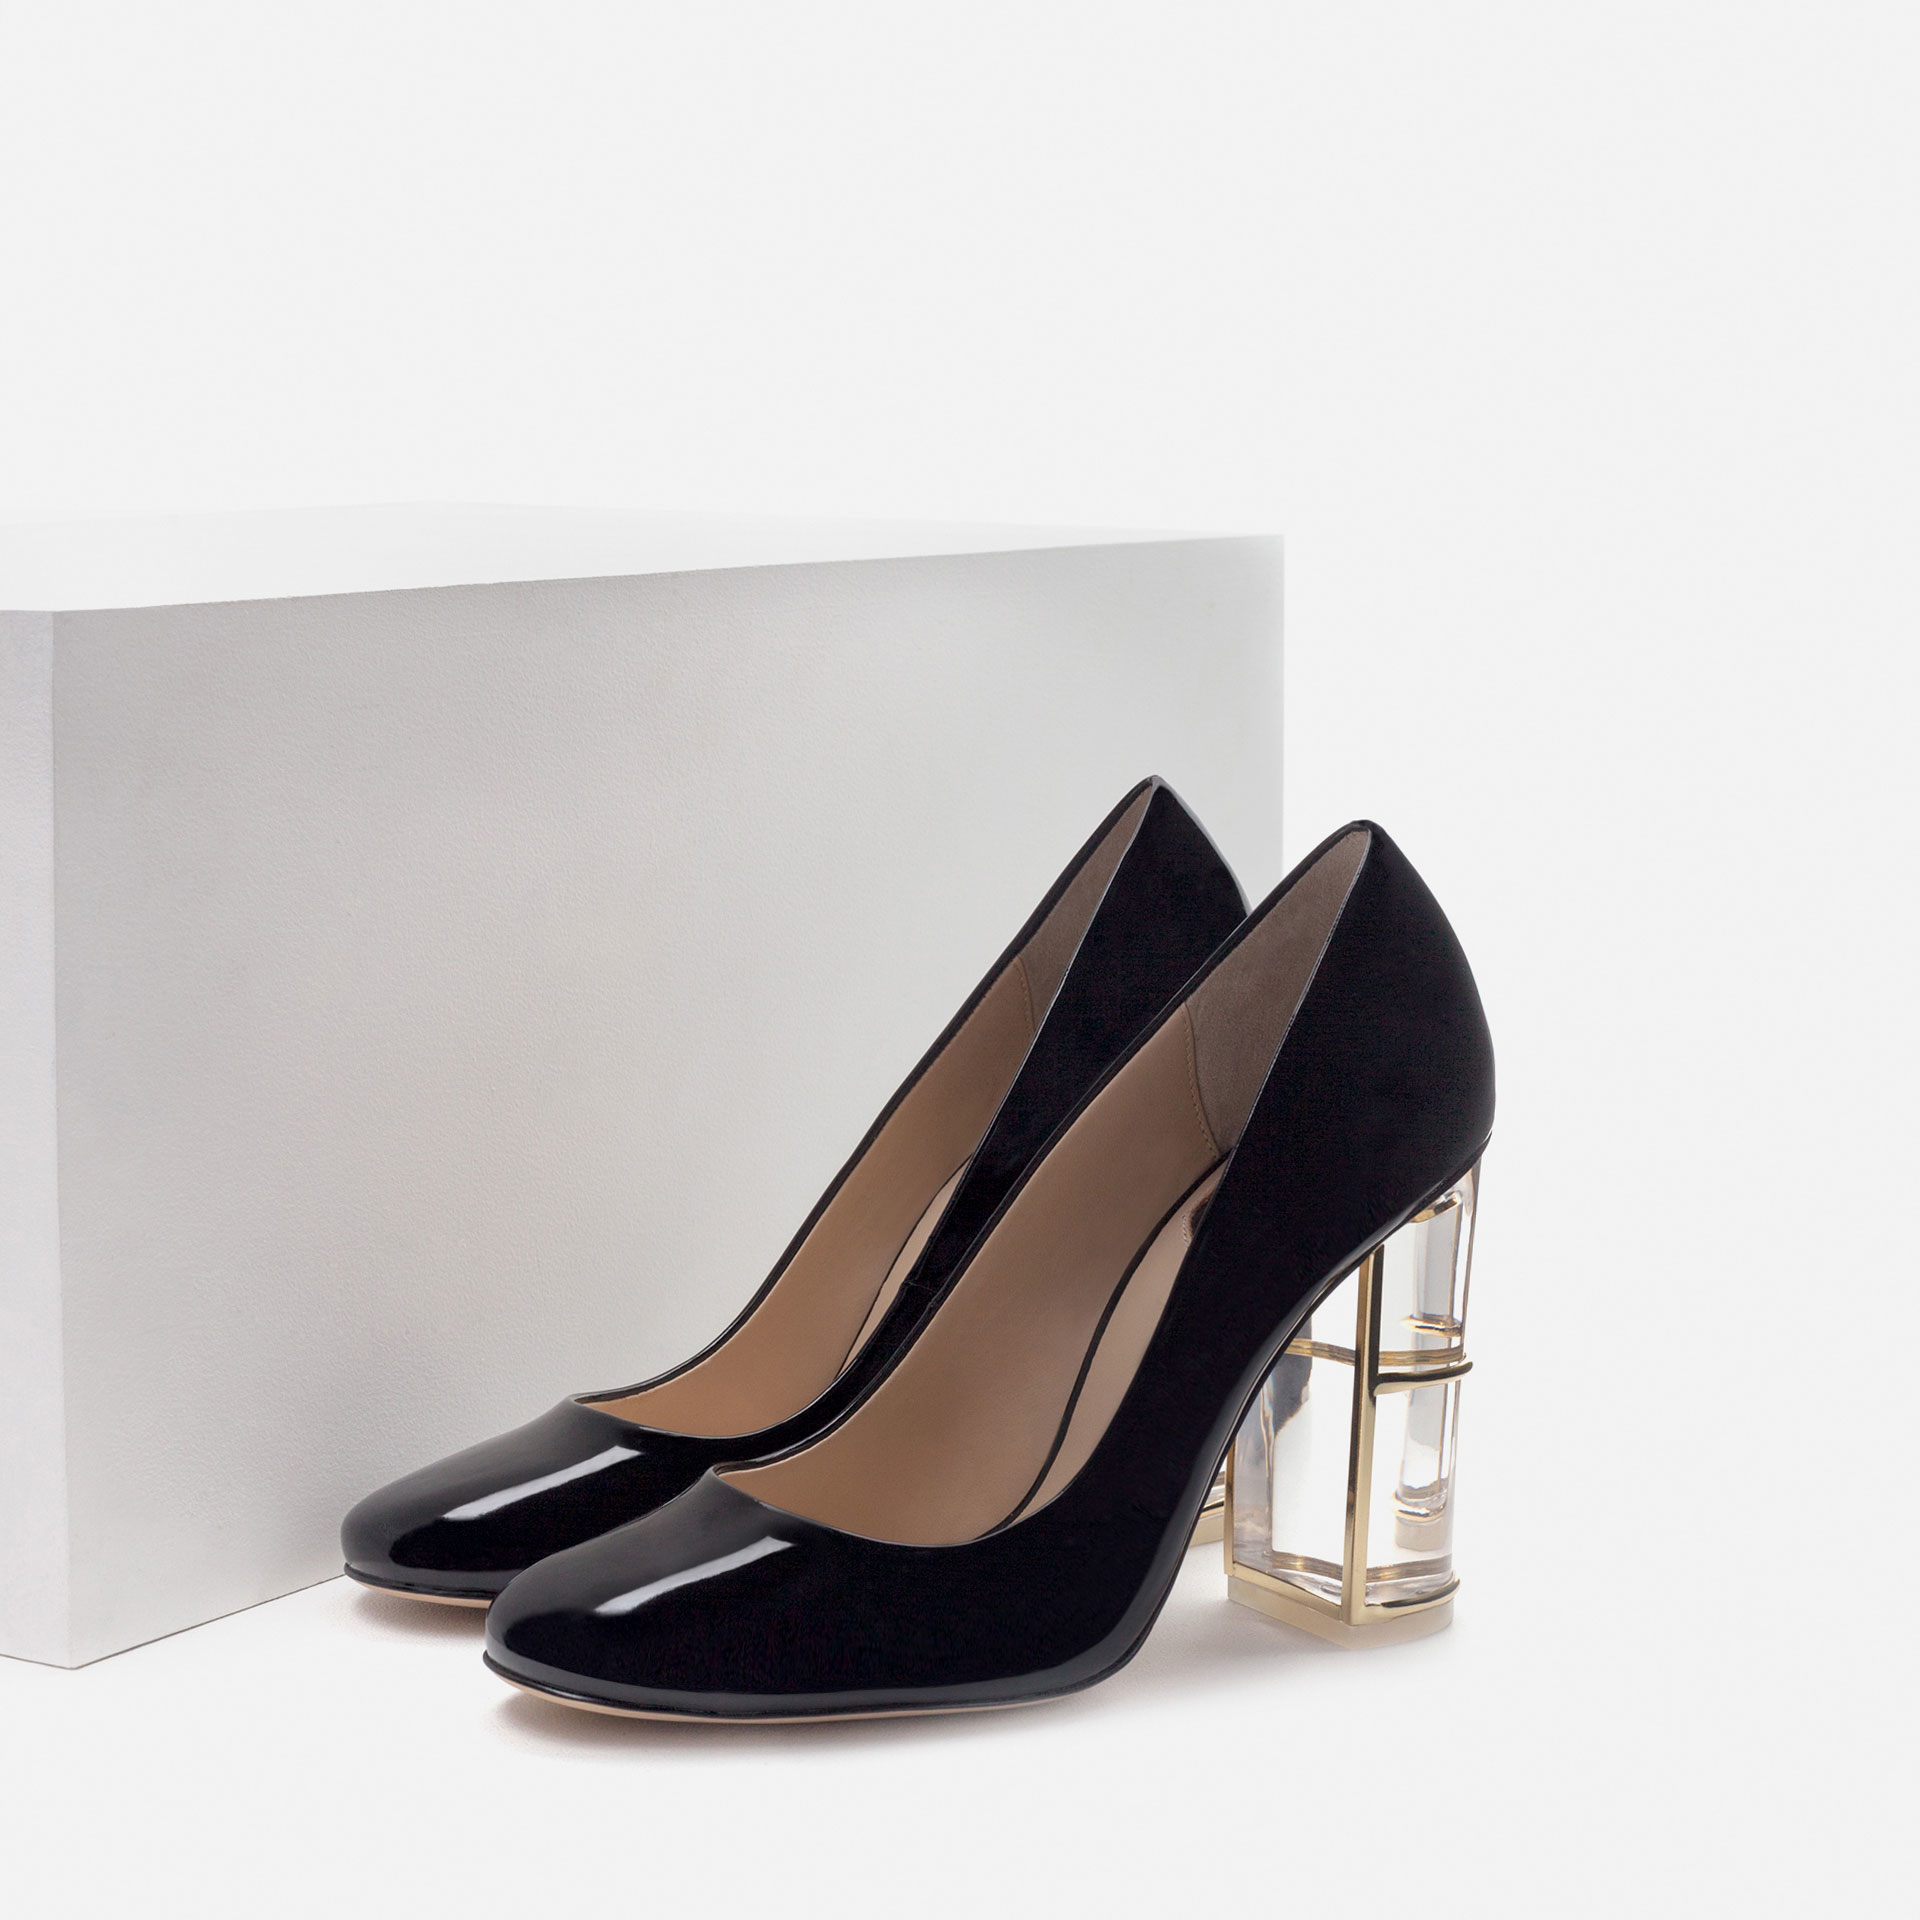 Discover a collection of court shoes, platforms and heels with ASOS. From flat court shoes to heeled court shoes, find them here at ASOS.